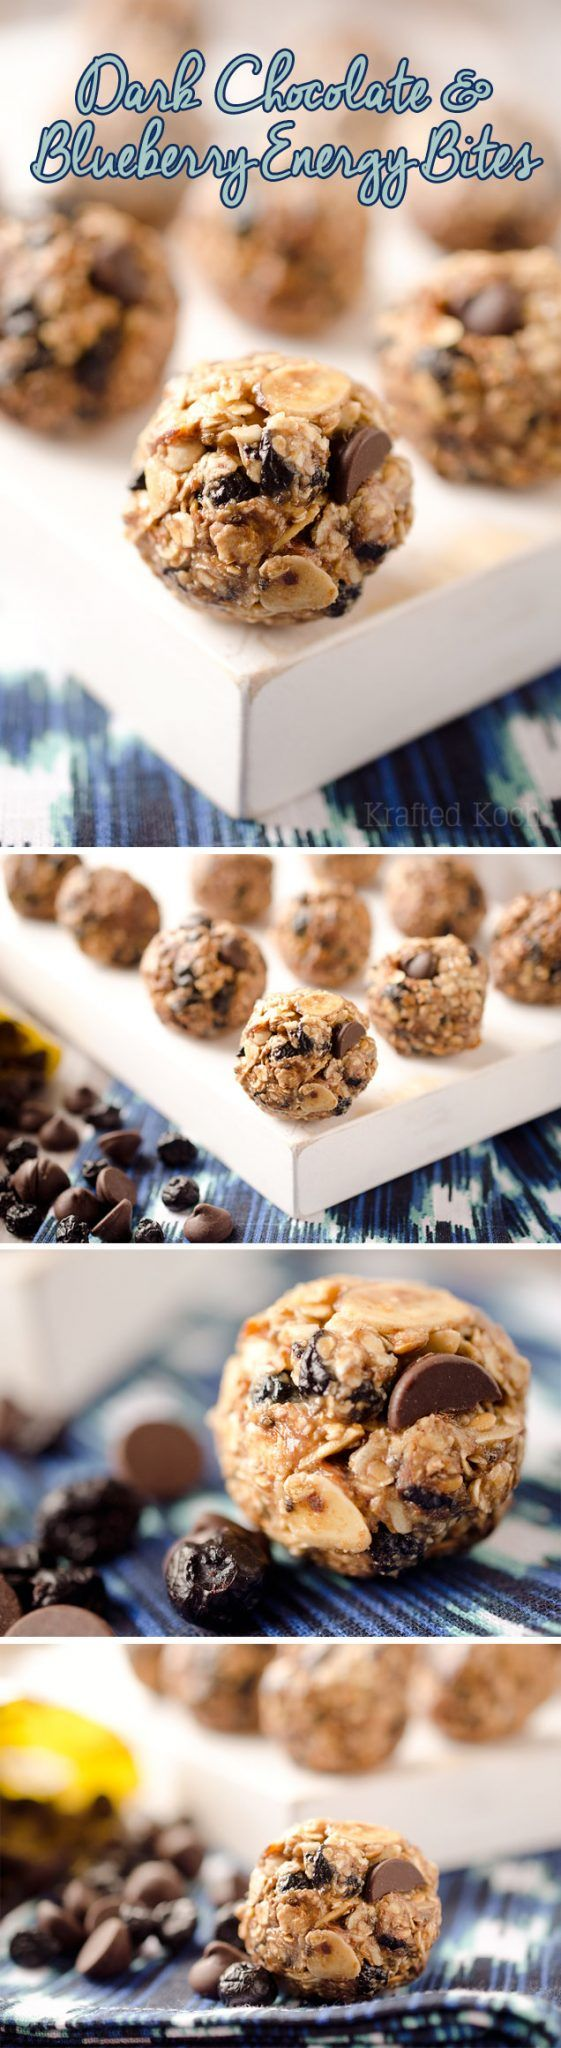 Dark Chocolate & Blueberry Energy Bites - Krafted Koch - A sweet little bite of dark chocolate and dried blueberries encompassed with whole grains and seeds for a protein packed snack!